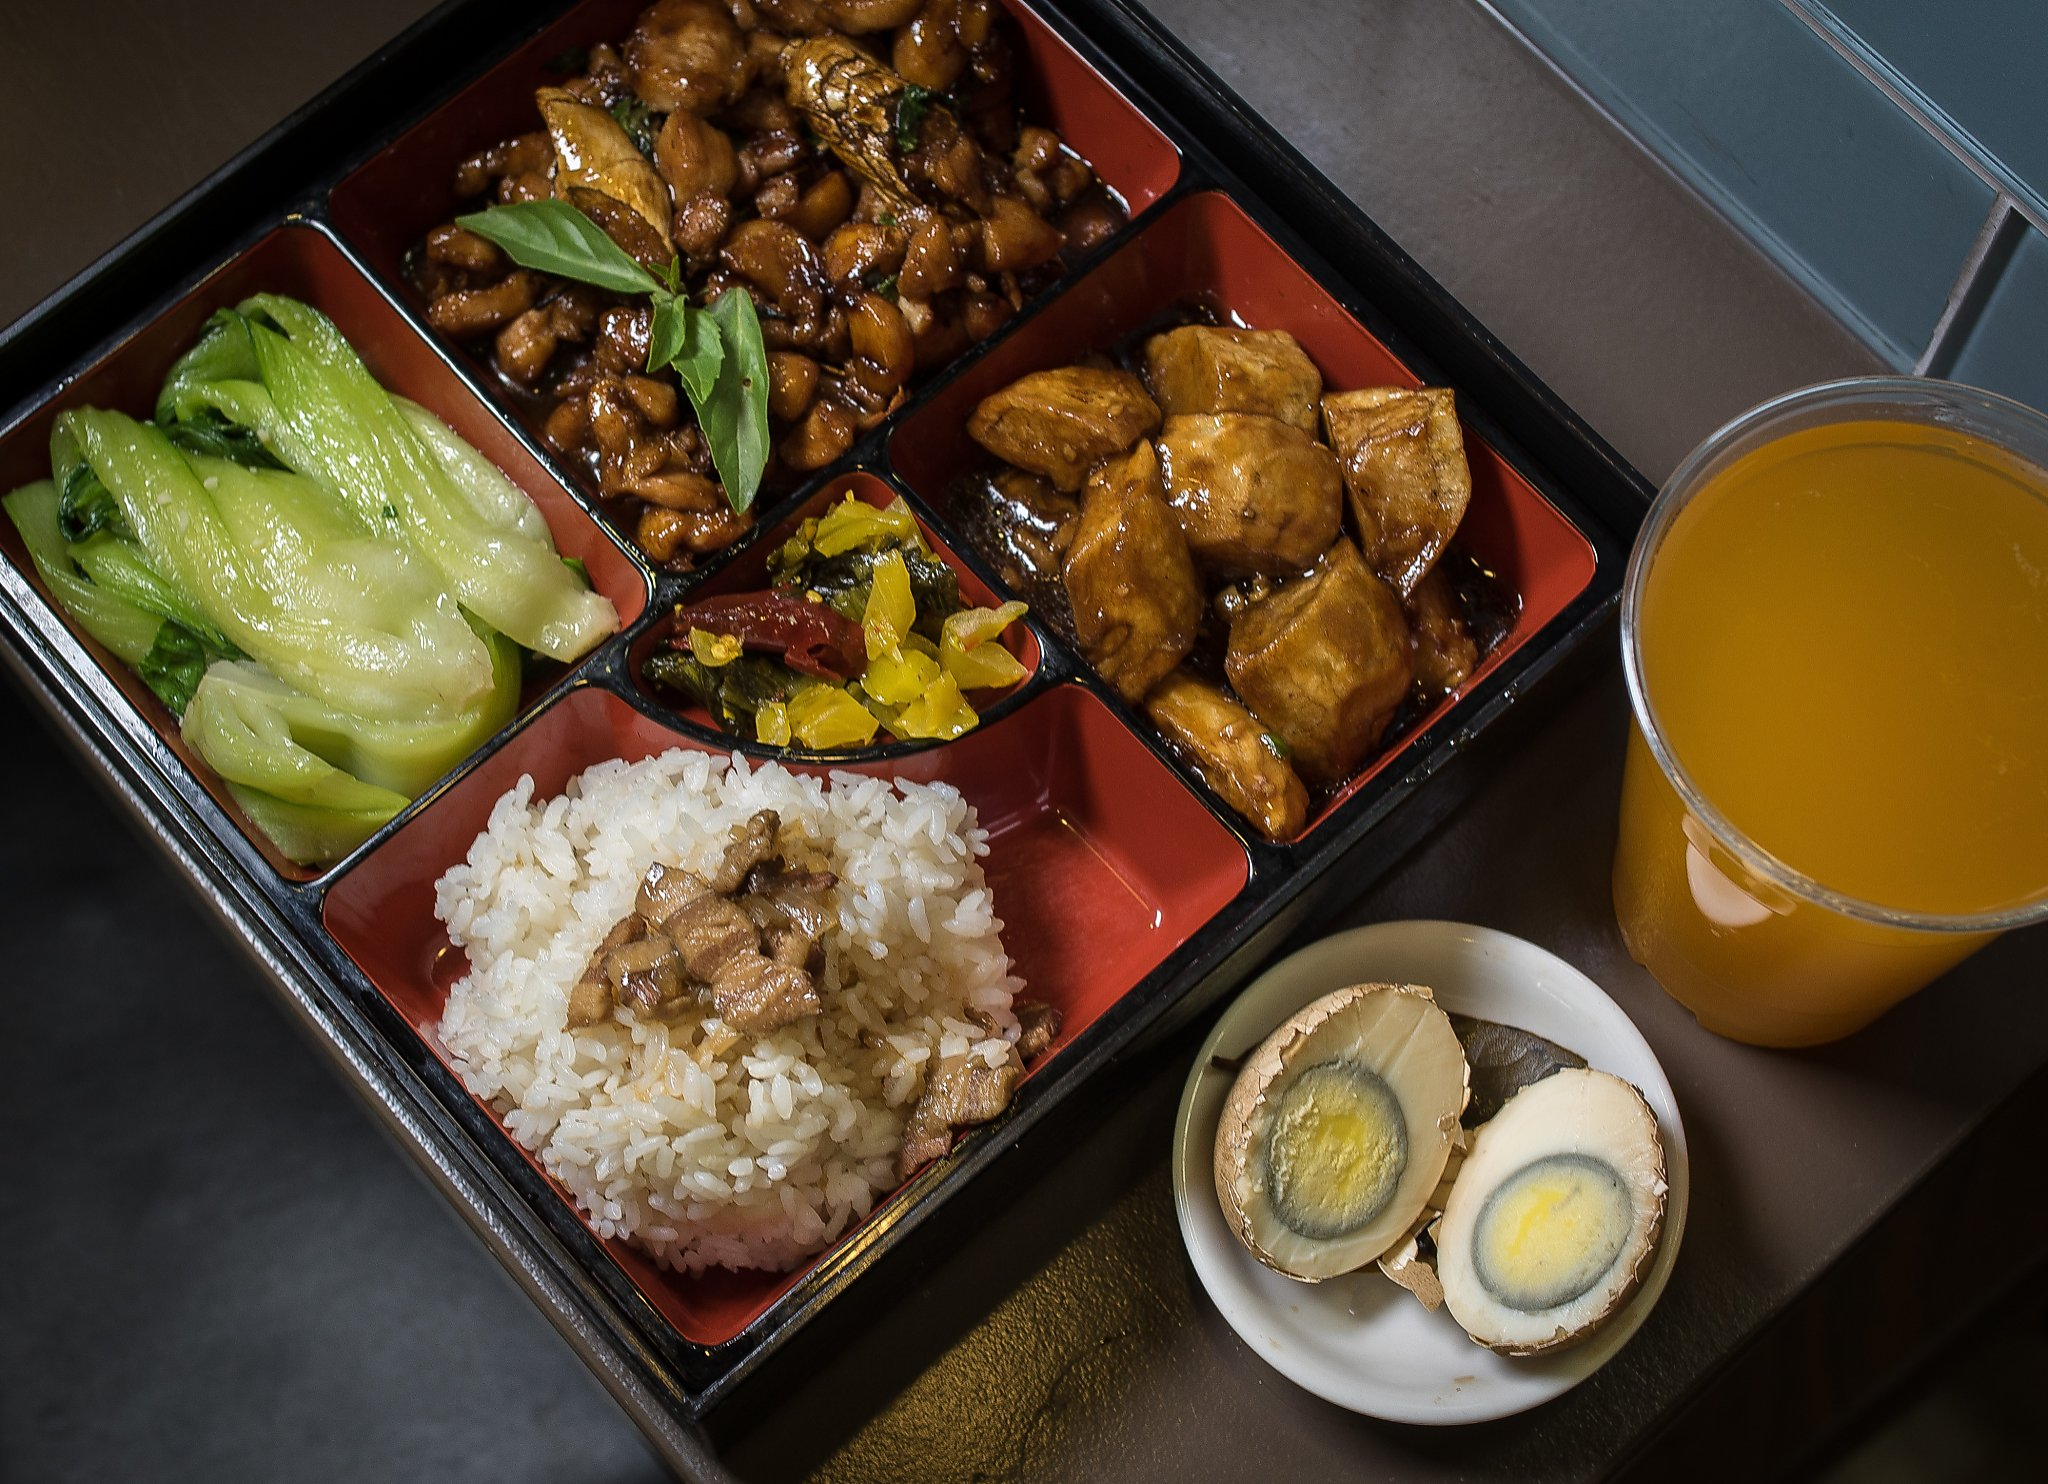 Redi To Go S Taiwanese Bento Fits In A Flavorful Array